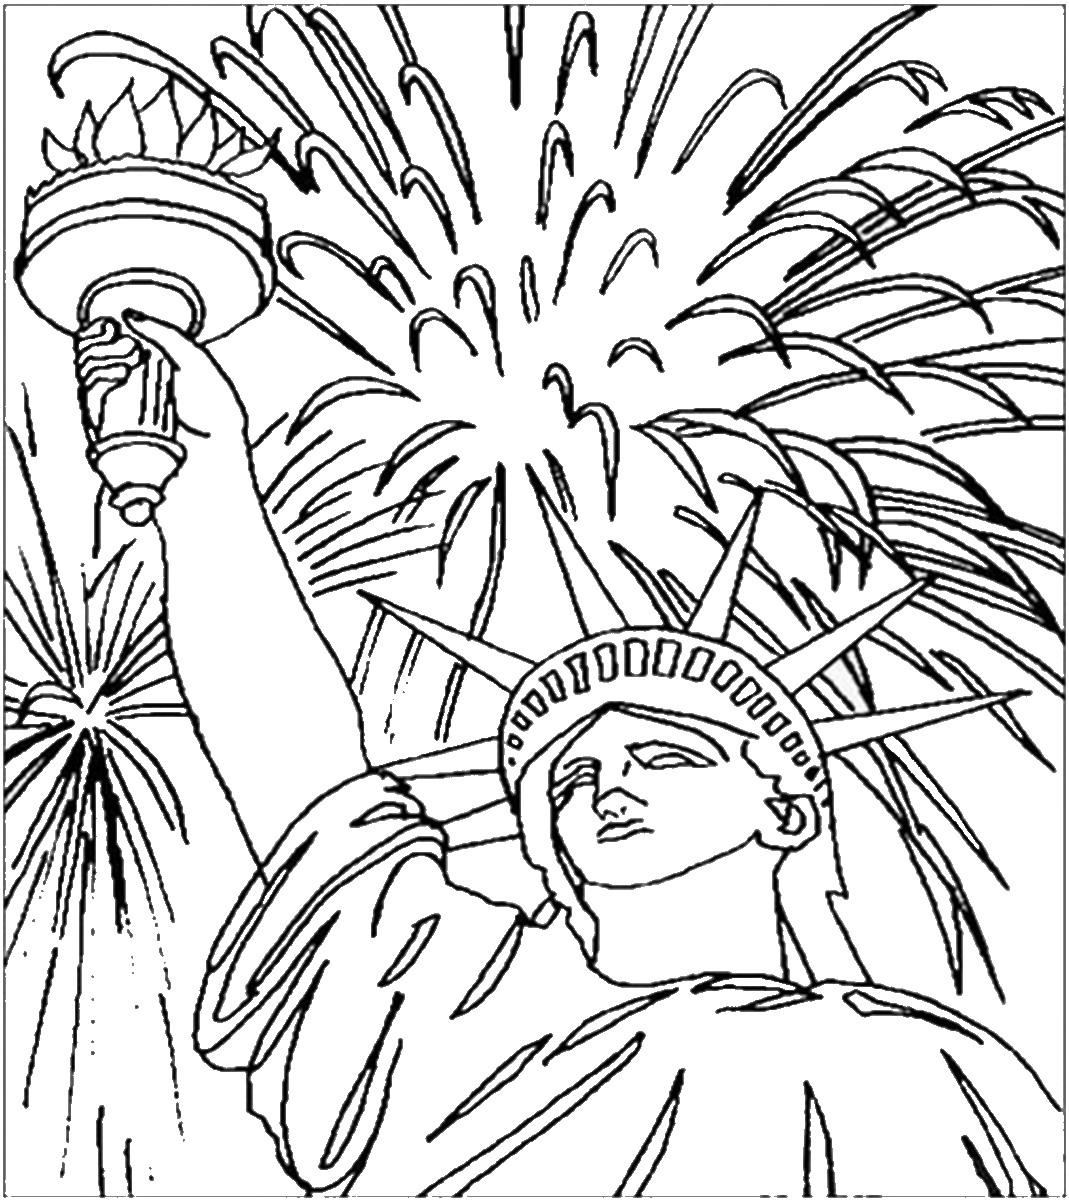 coloring pages 4th of july 4th of july coloring pages best coloring pages for kids coloring pages july of 4th